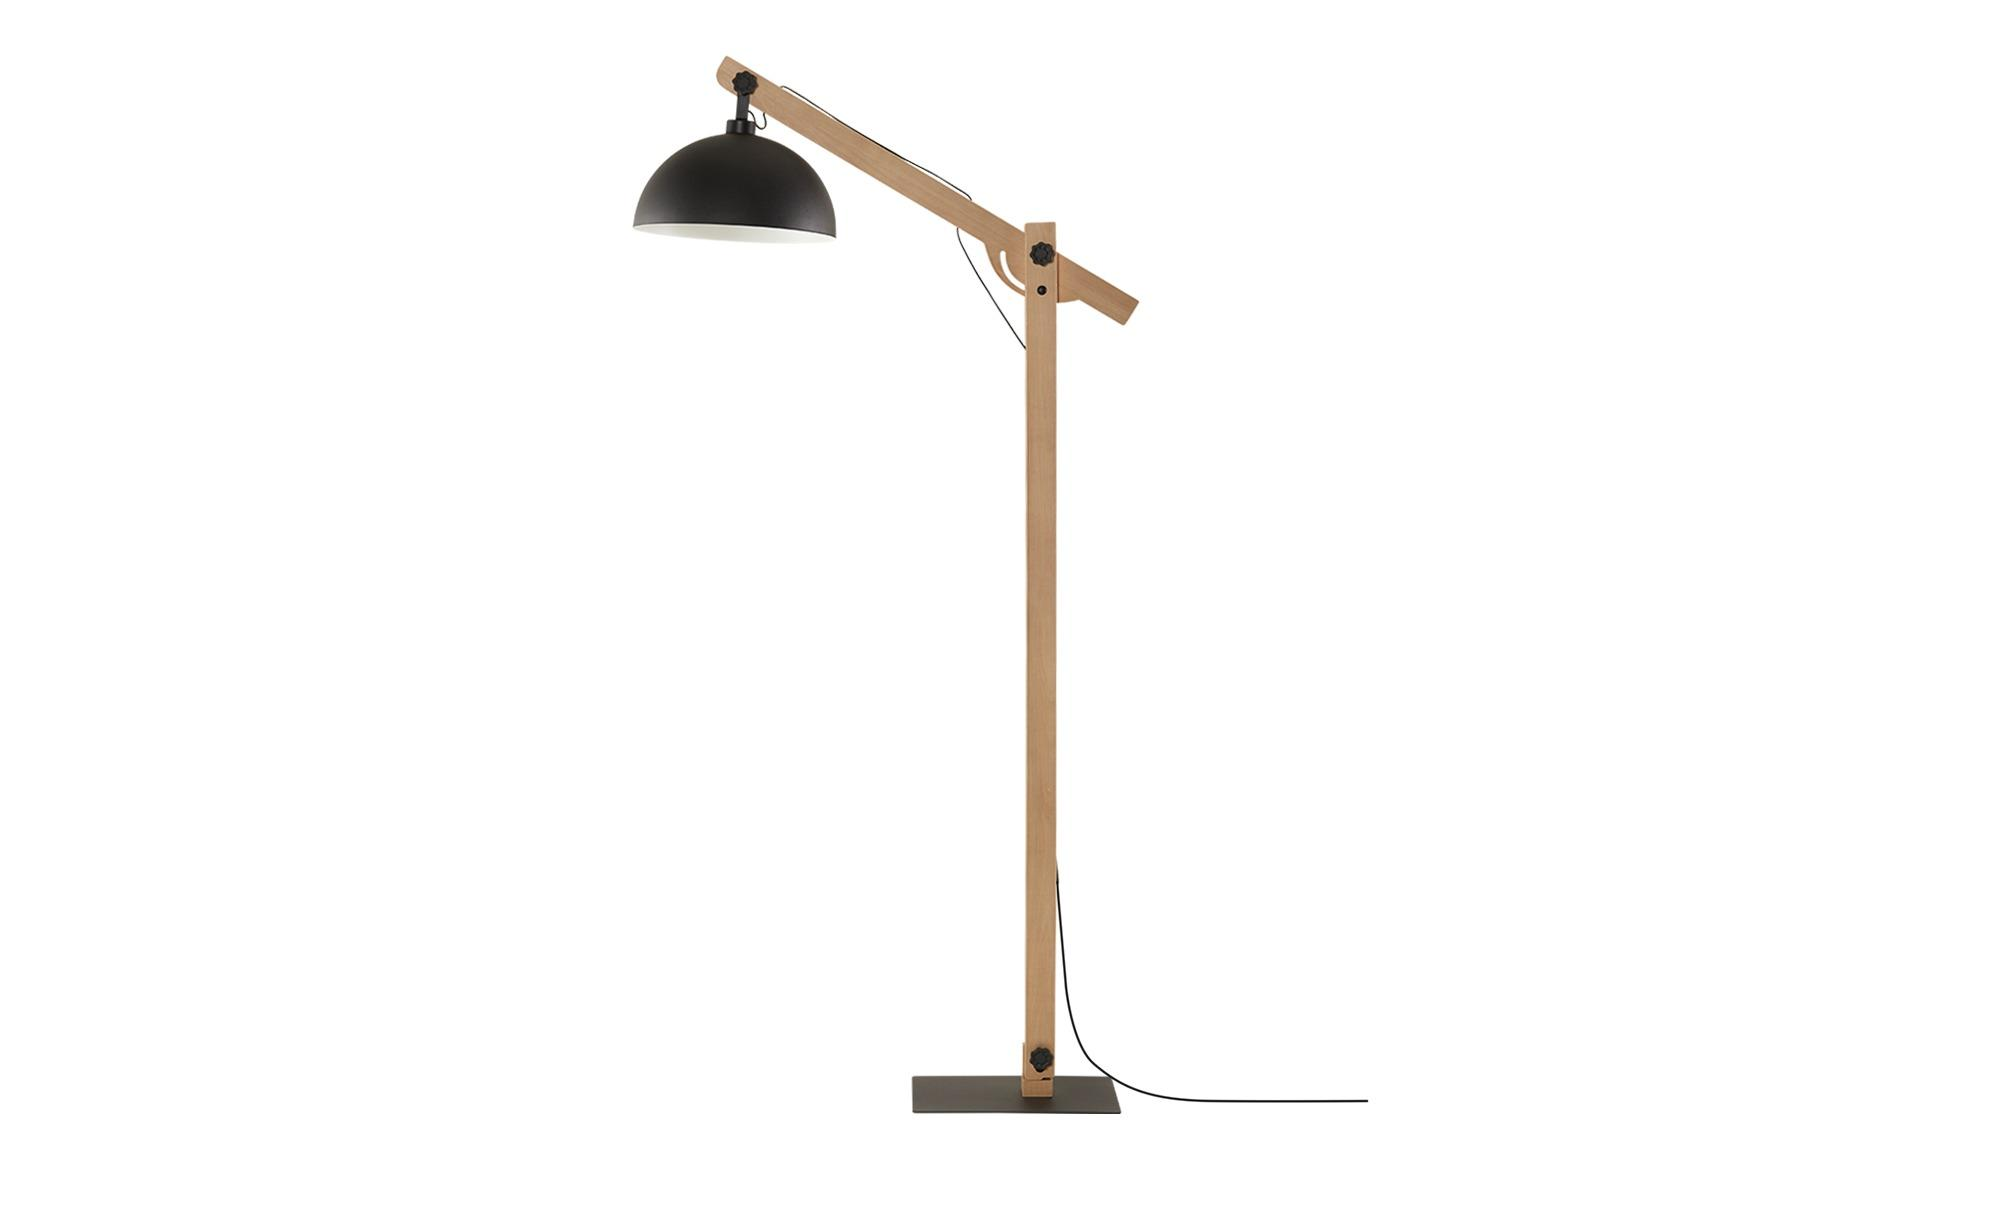 Lampenschirm Holz Stehlampe